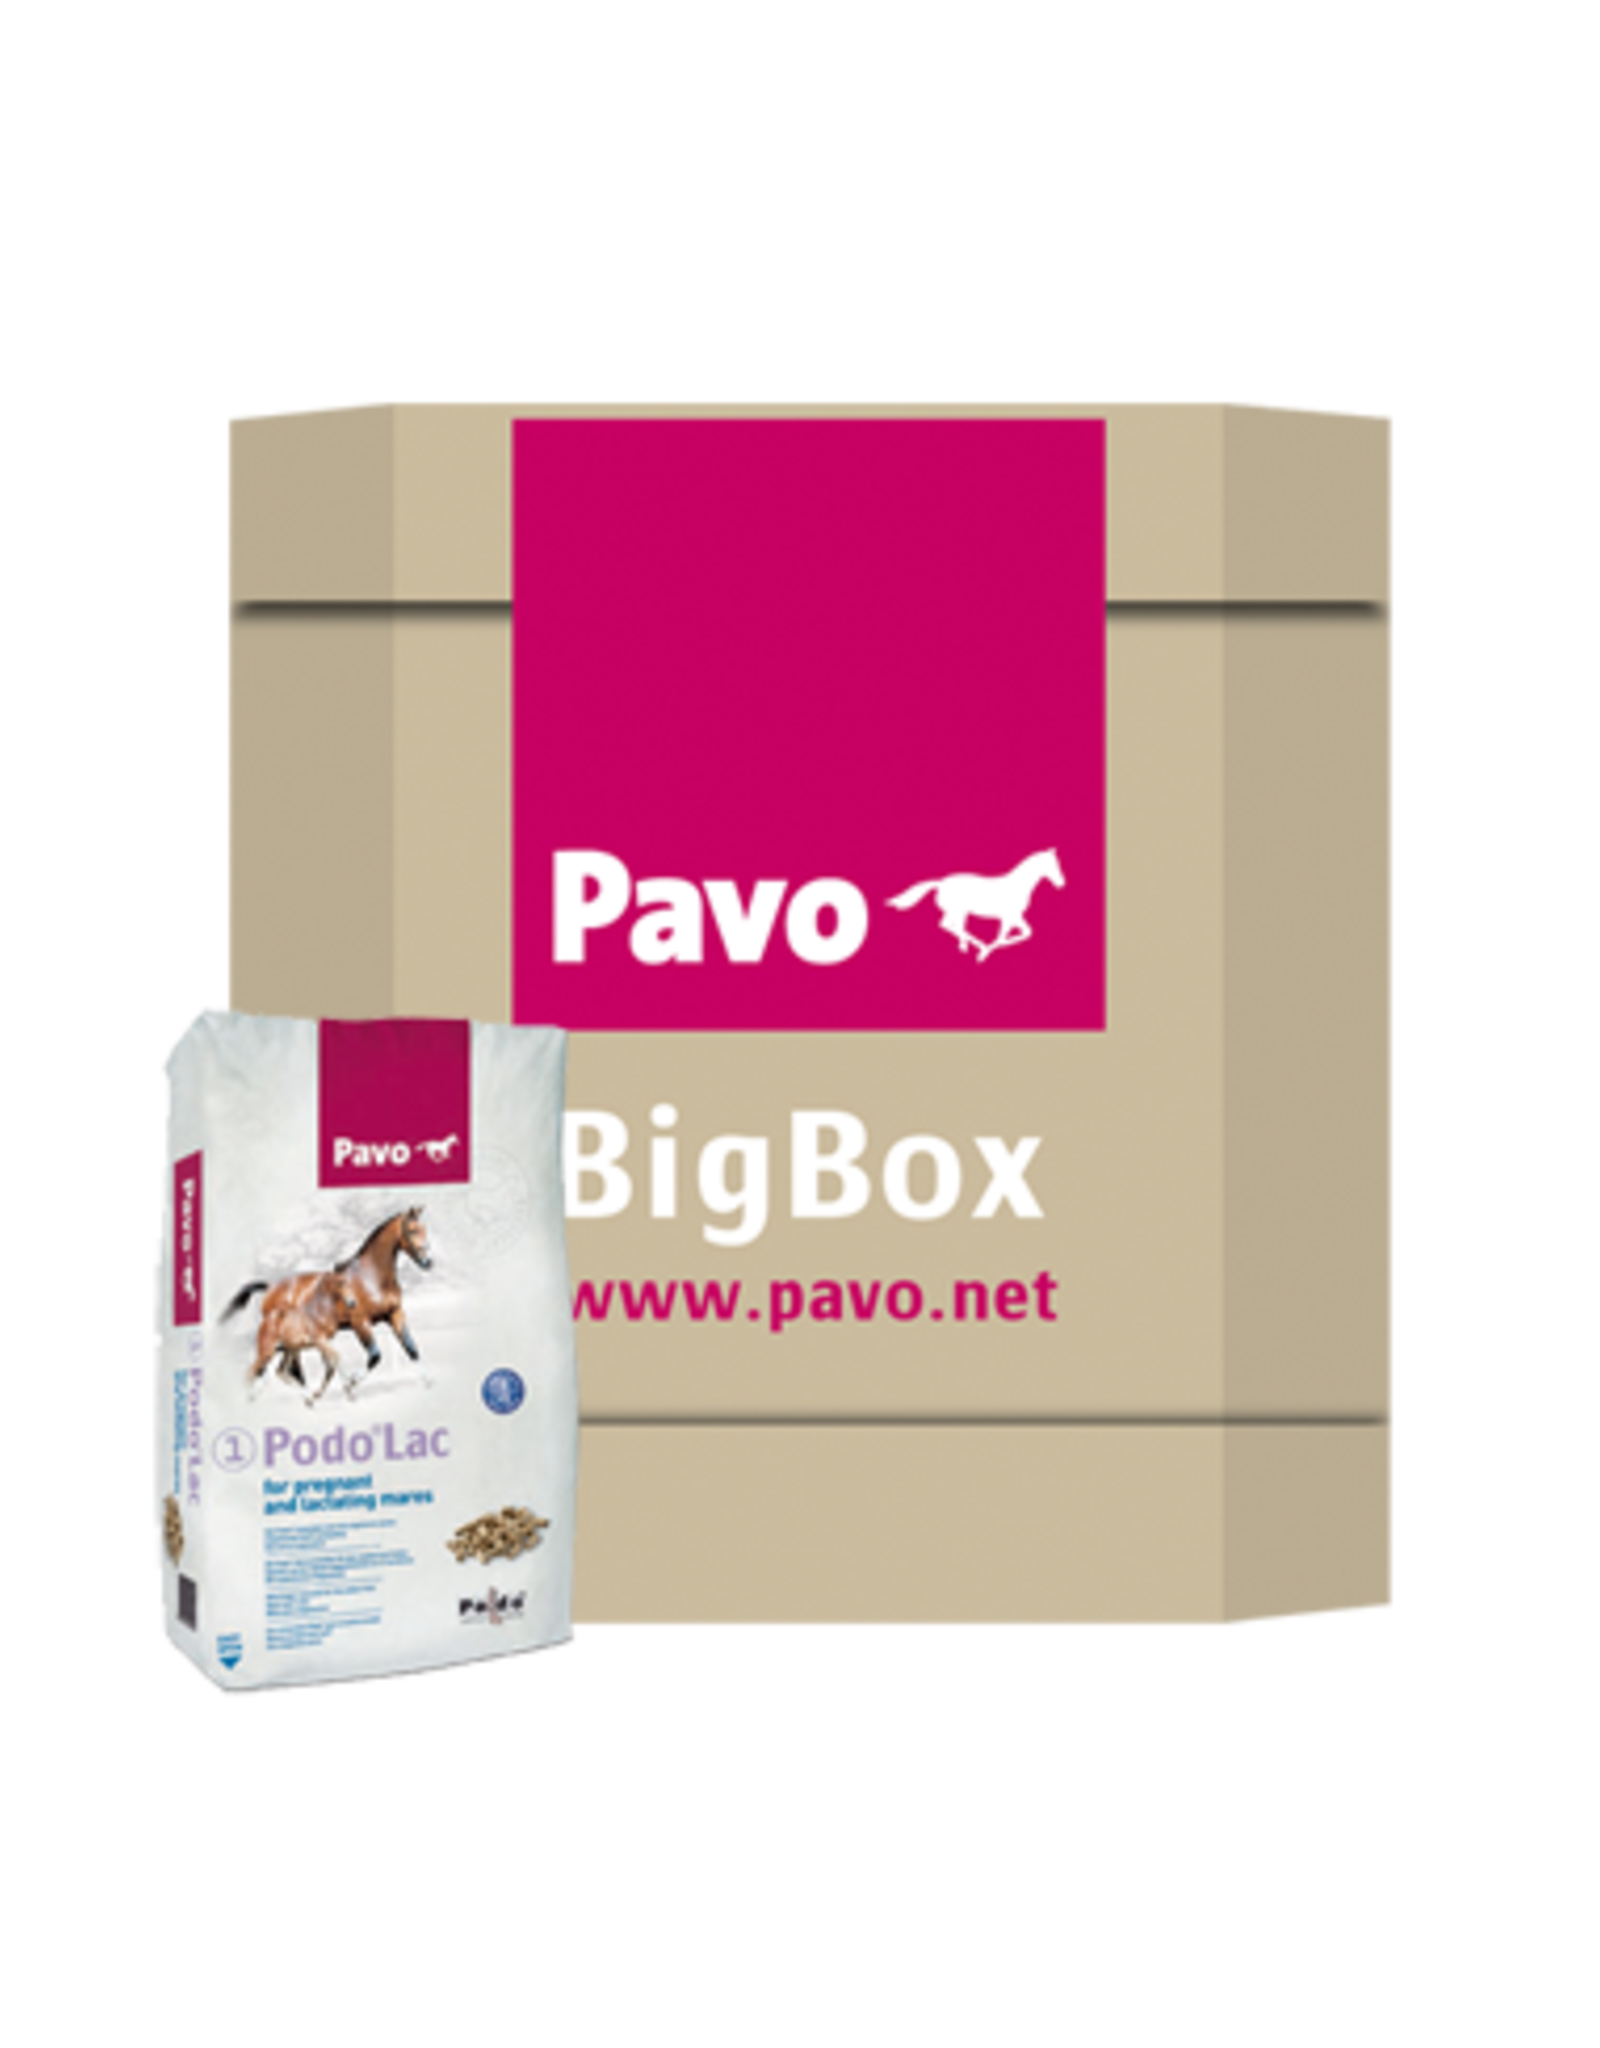 Pavo Pavo Podo®Lac - Big Box 725 kg